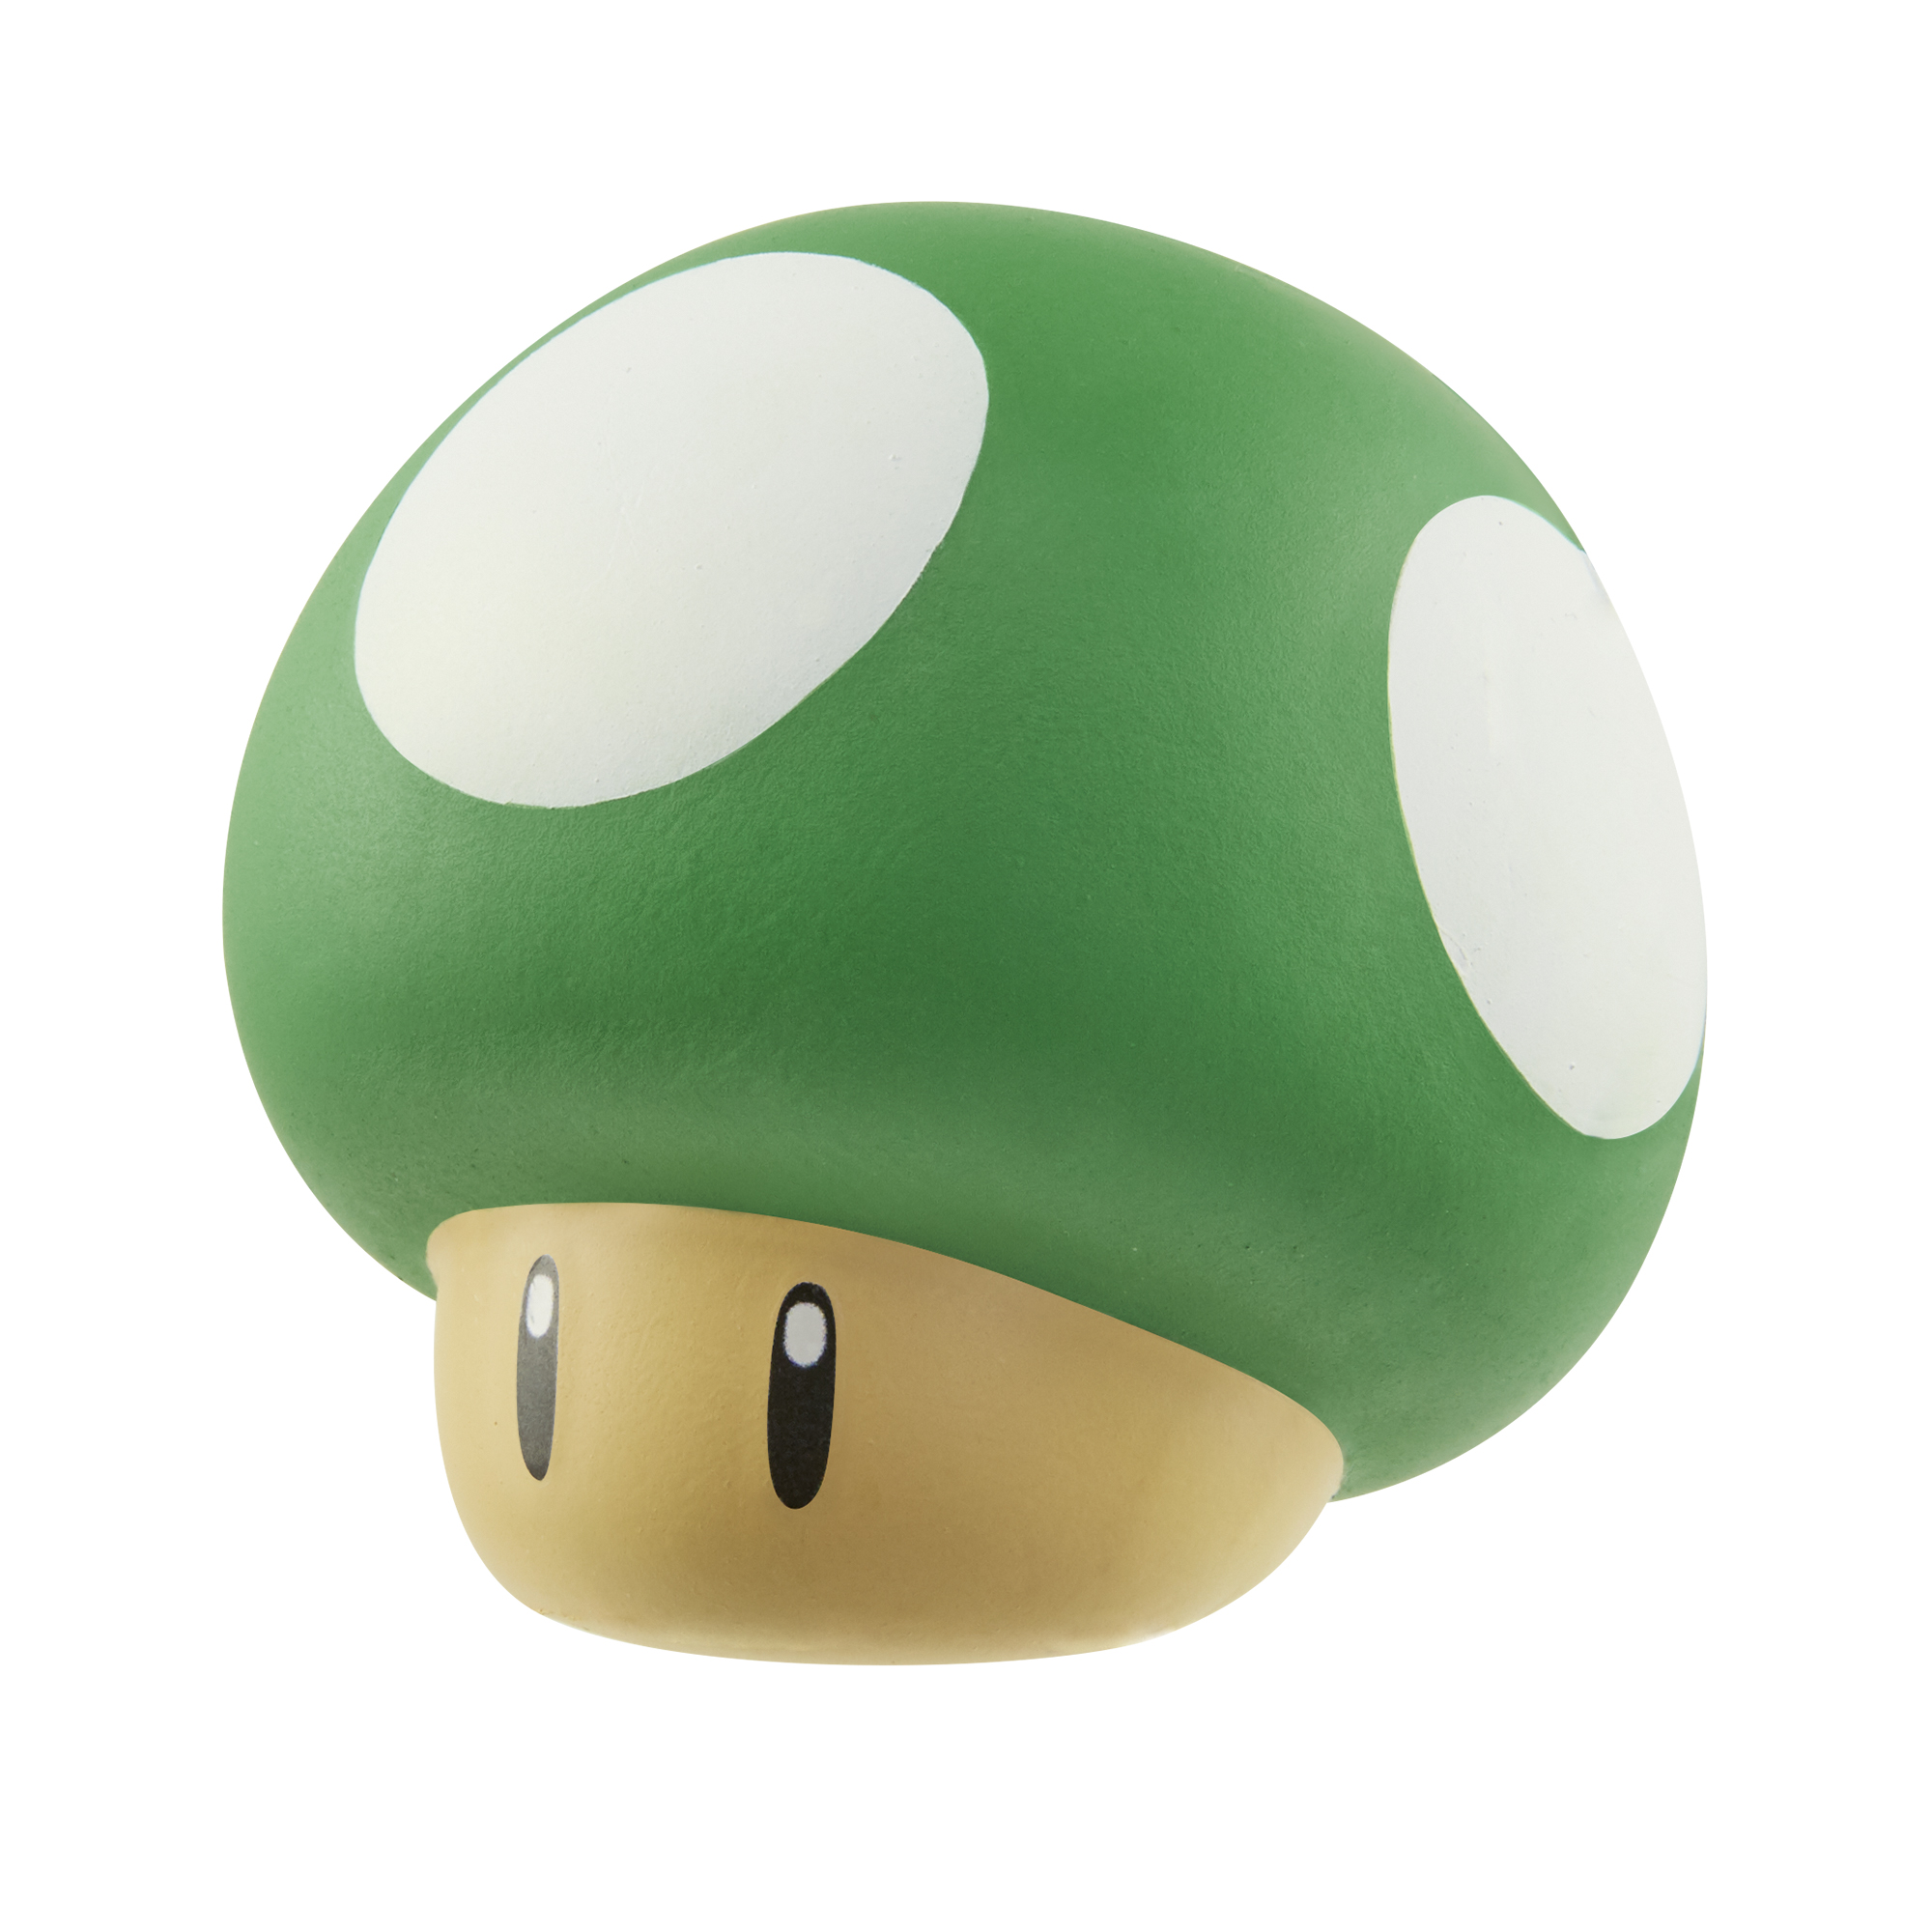 Super Mario Squish Dee-Lish Green Mushroom (1-UP)